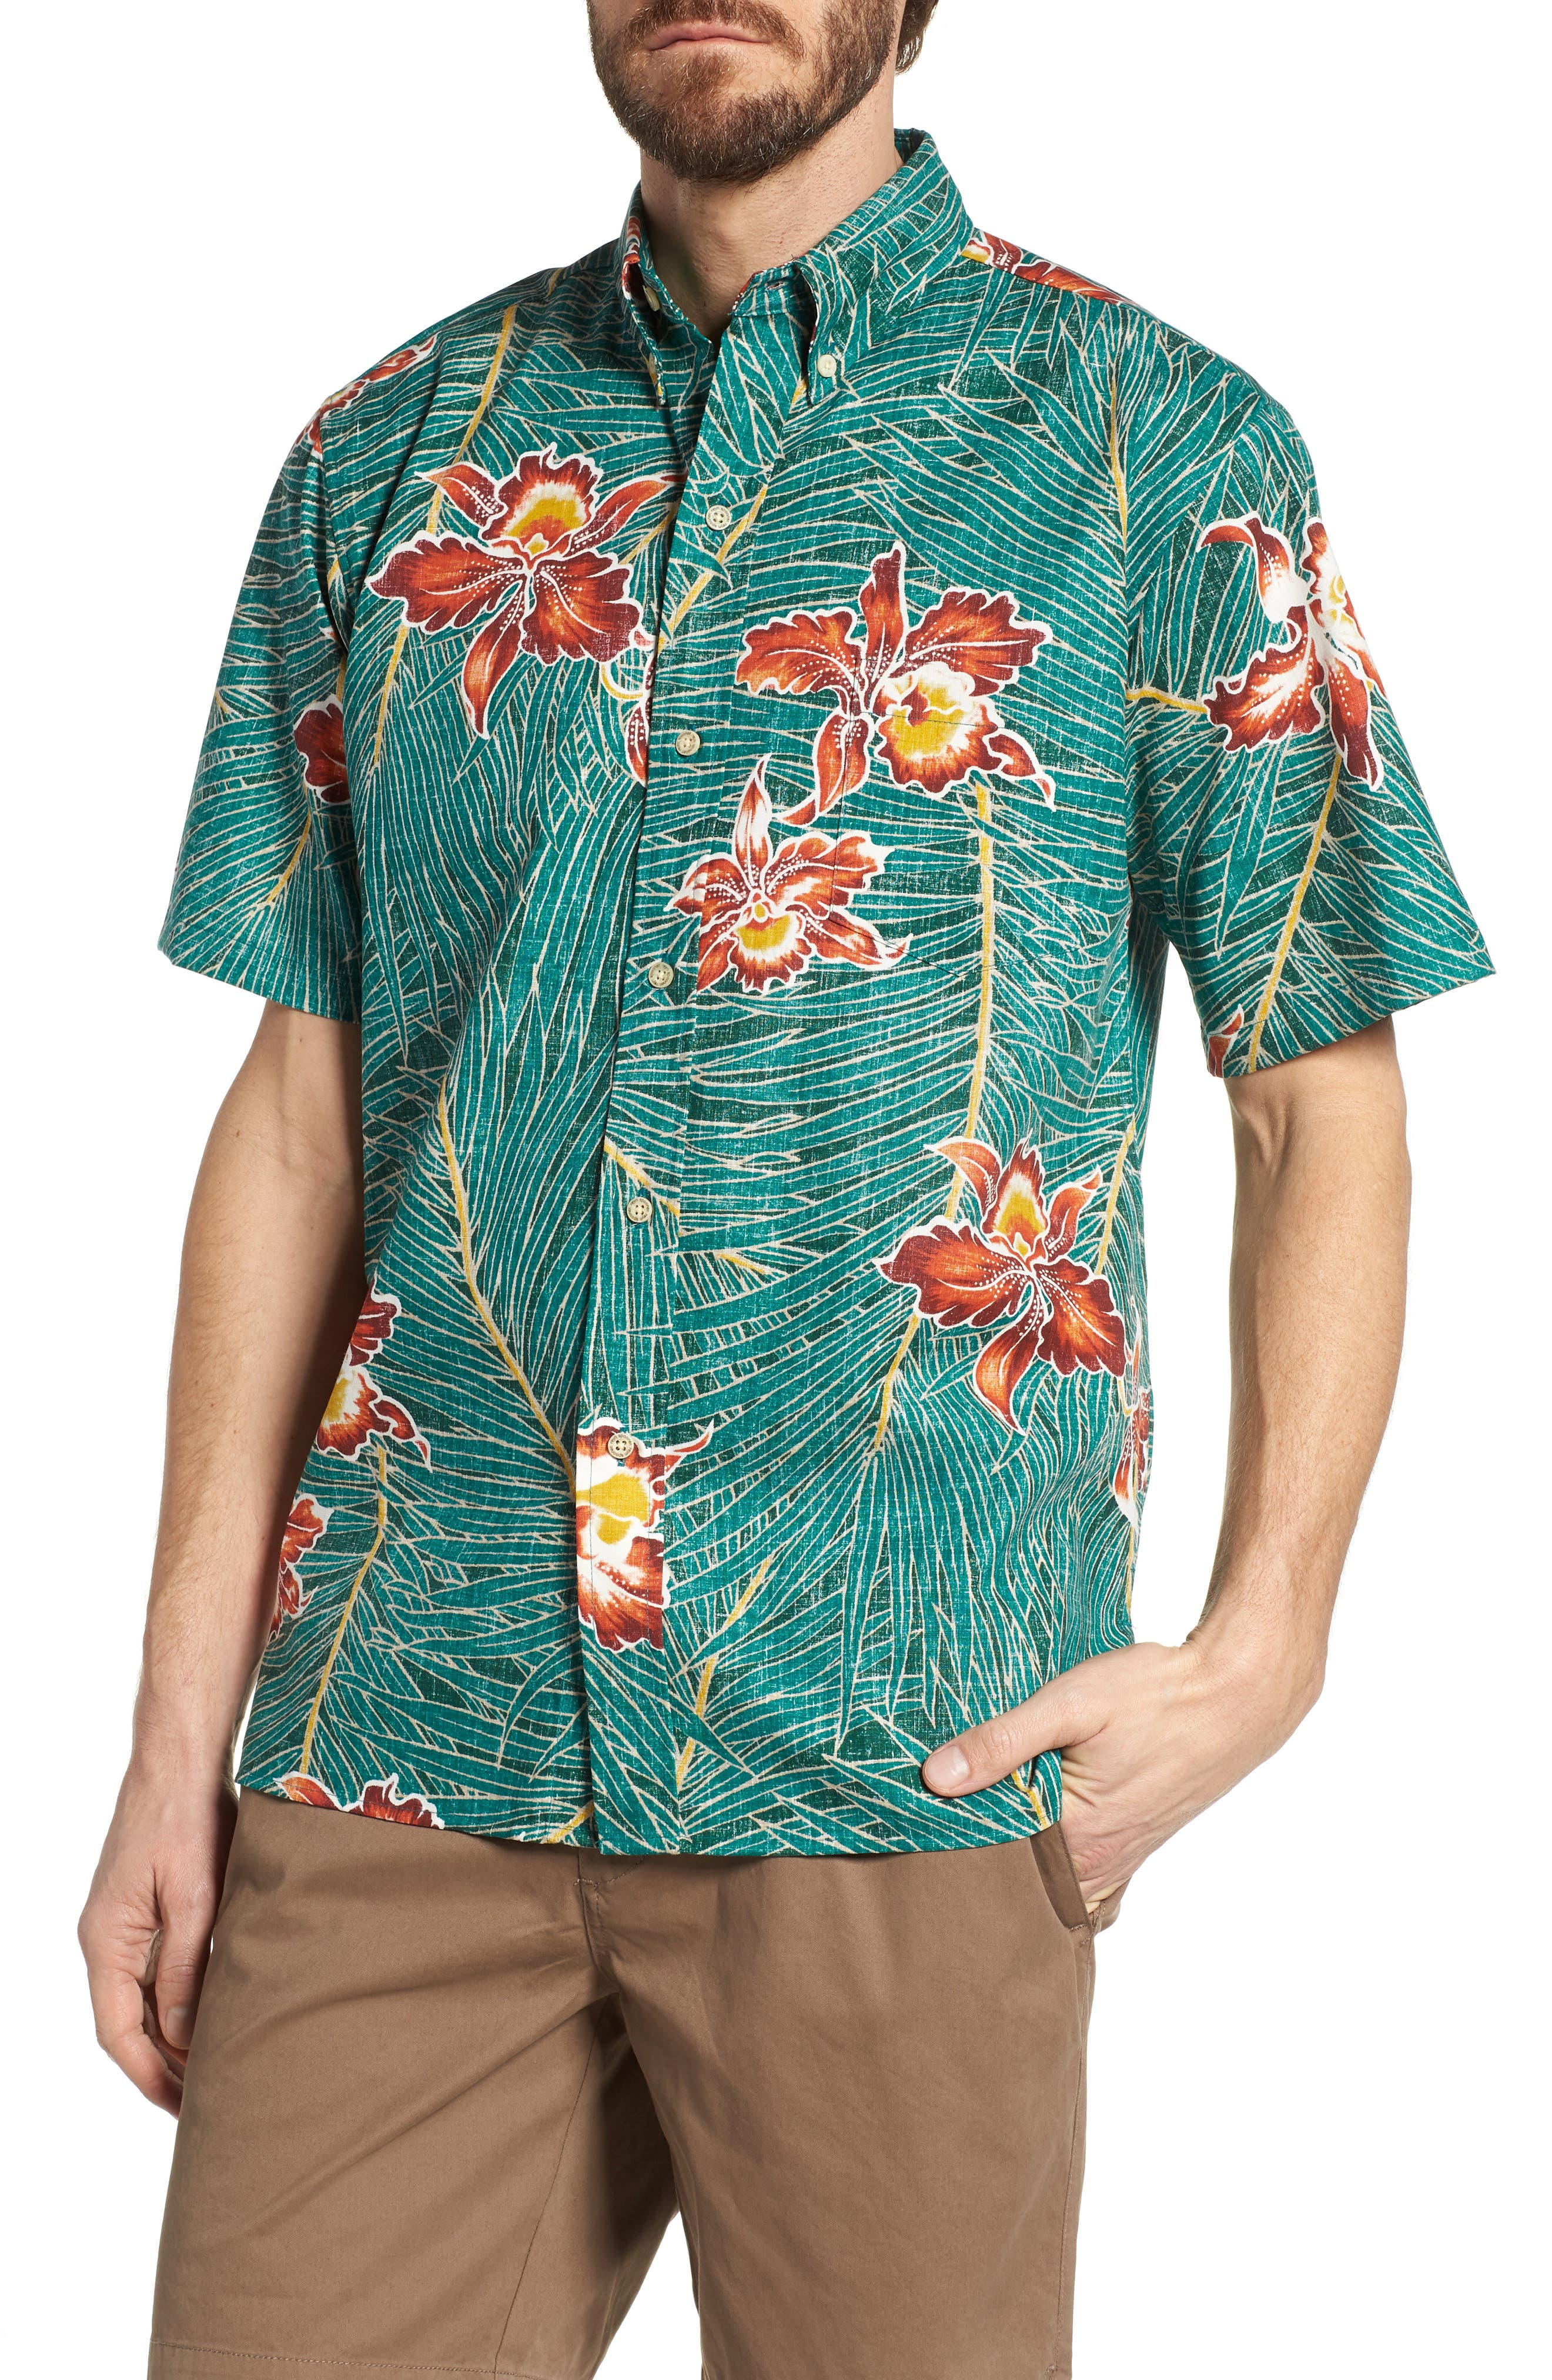 Okika Oasis Traditional Fit Sport Shirt,                         Main,                         color, Emerald